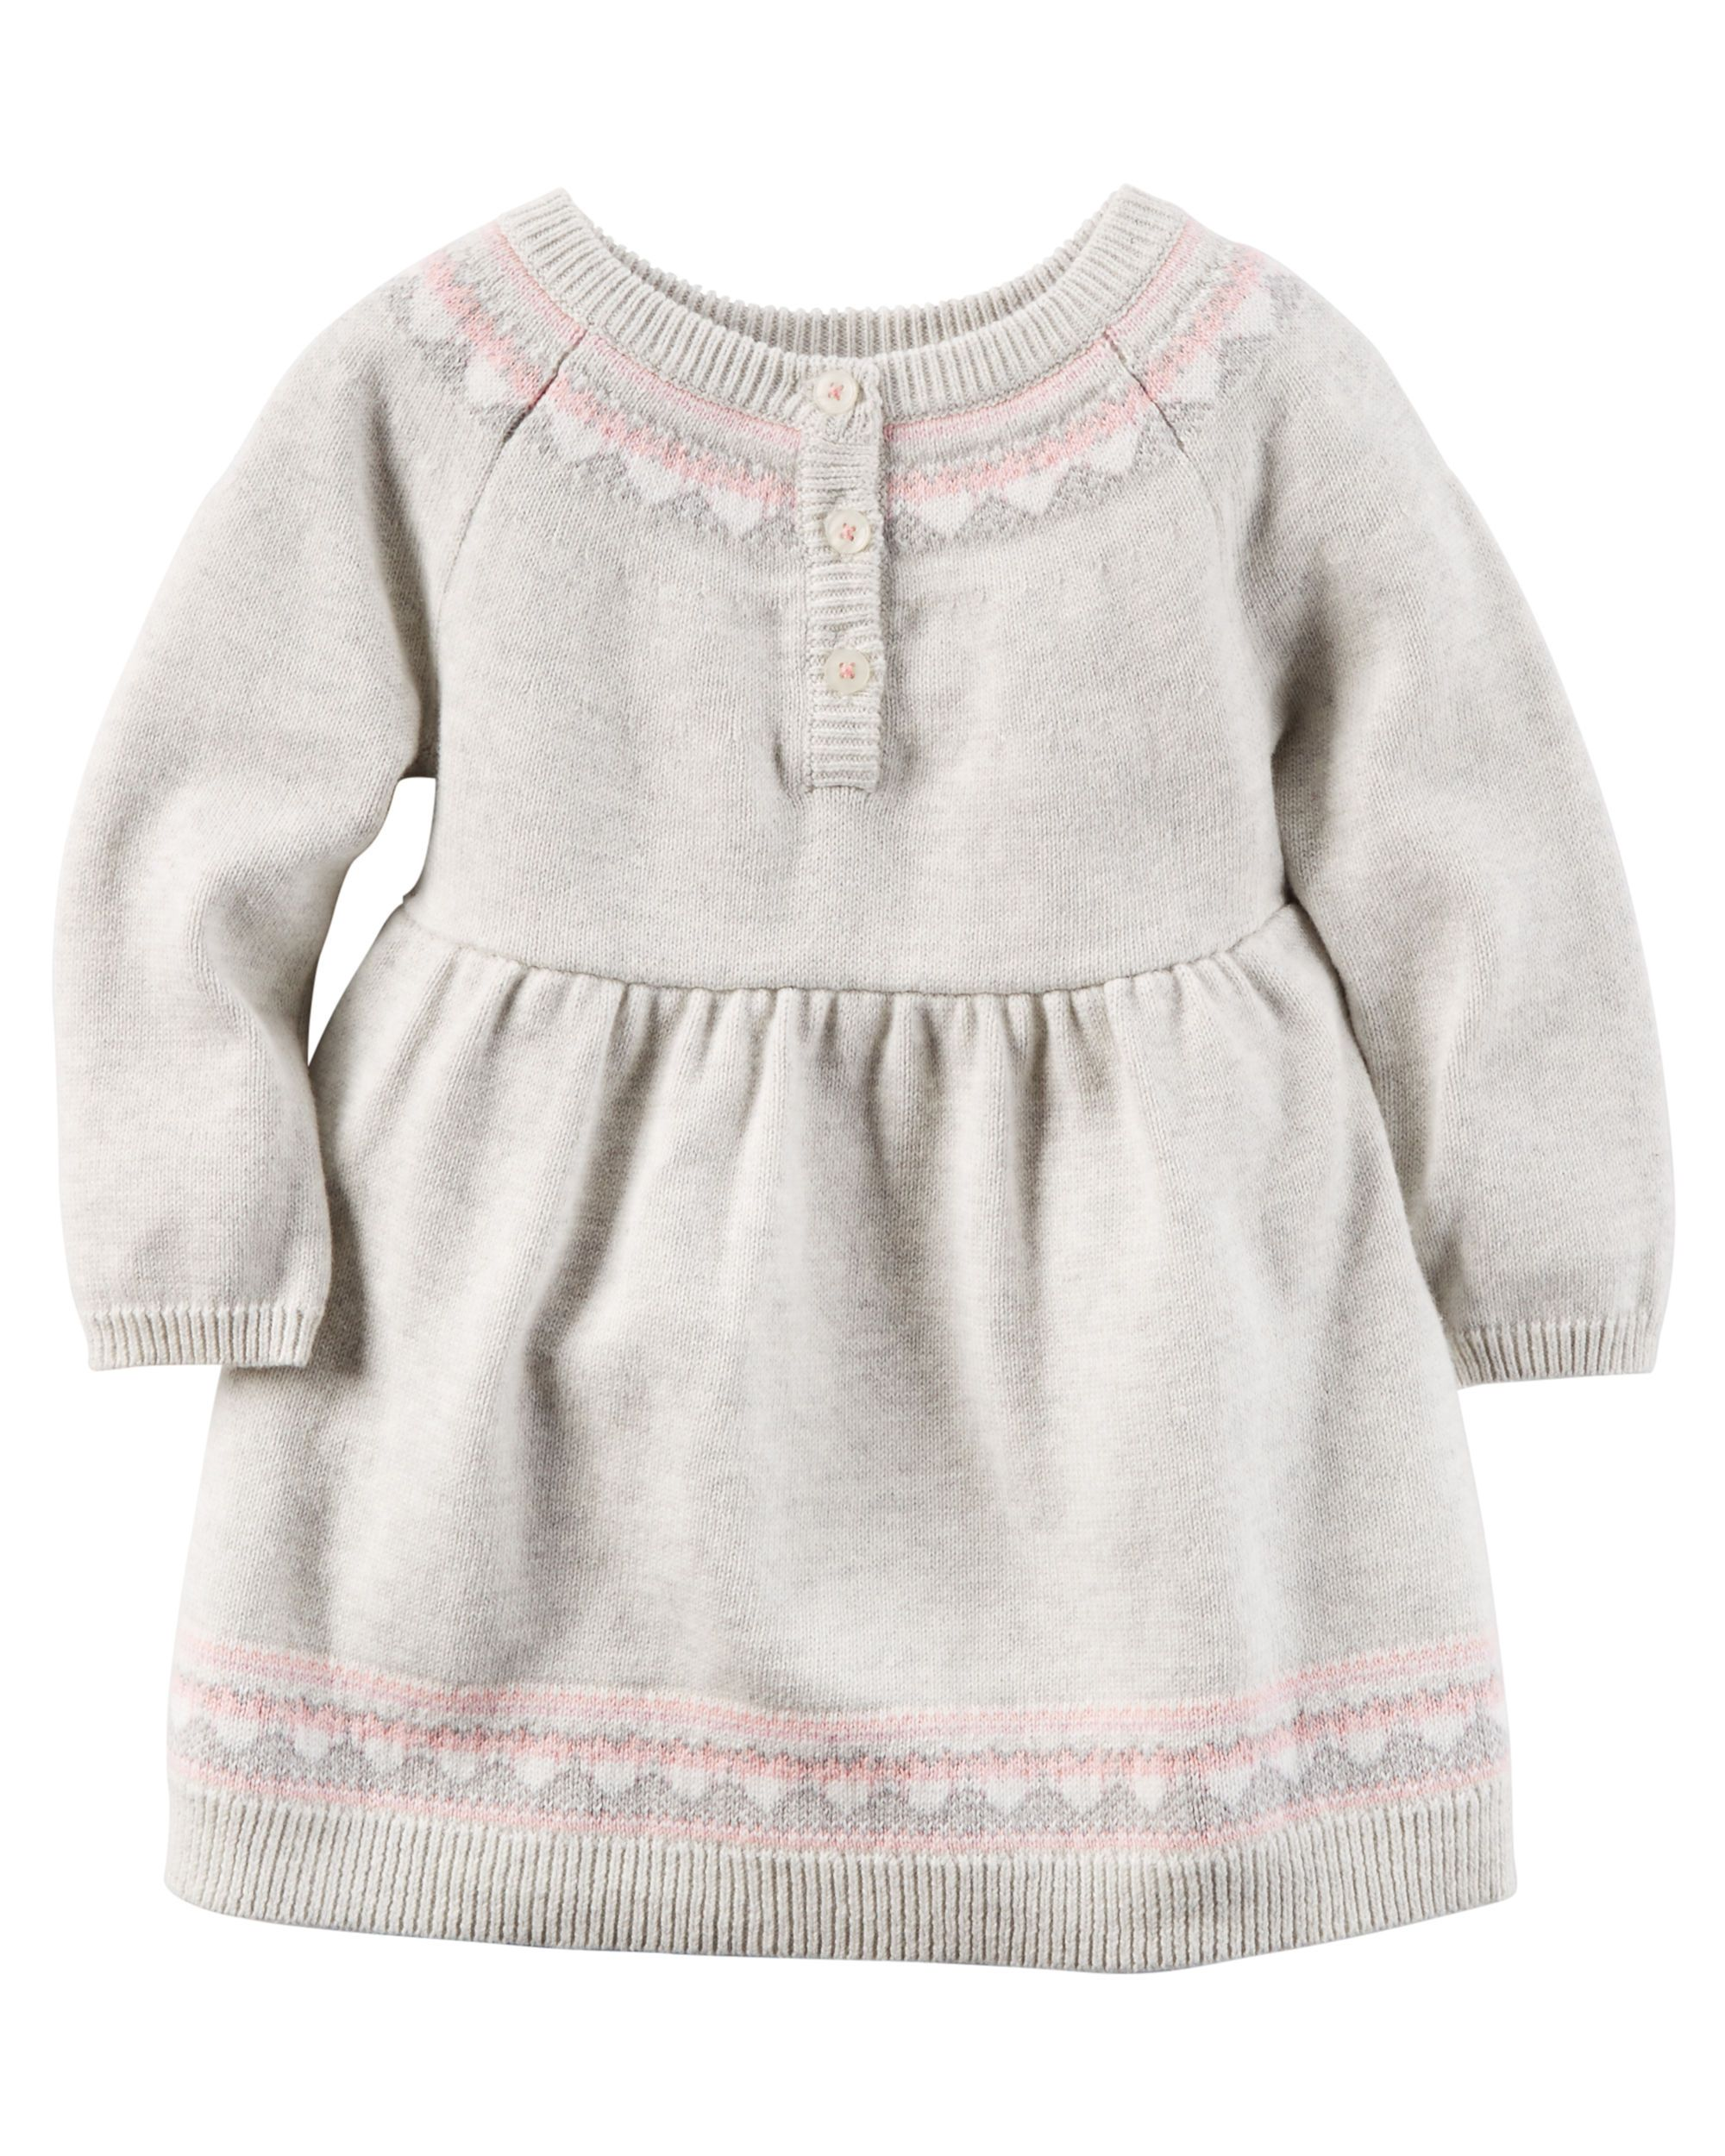 810a2ab70fdf0 Baby Girl Sweater Dress from Carters.com. Shop clothing   accessories from  a…